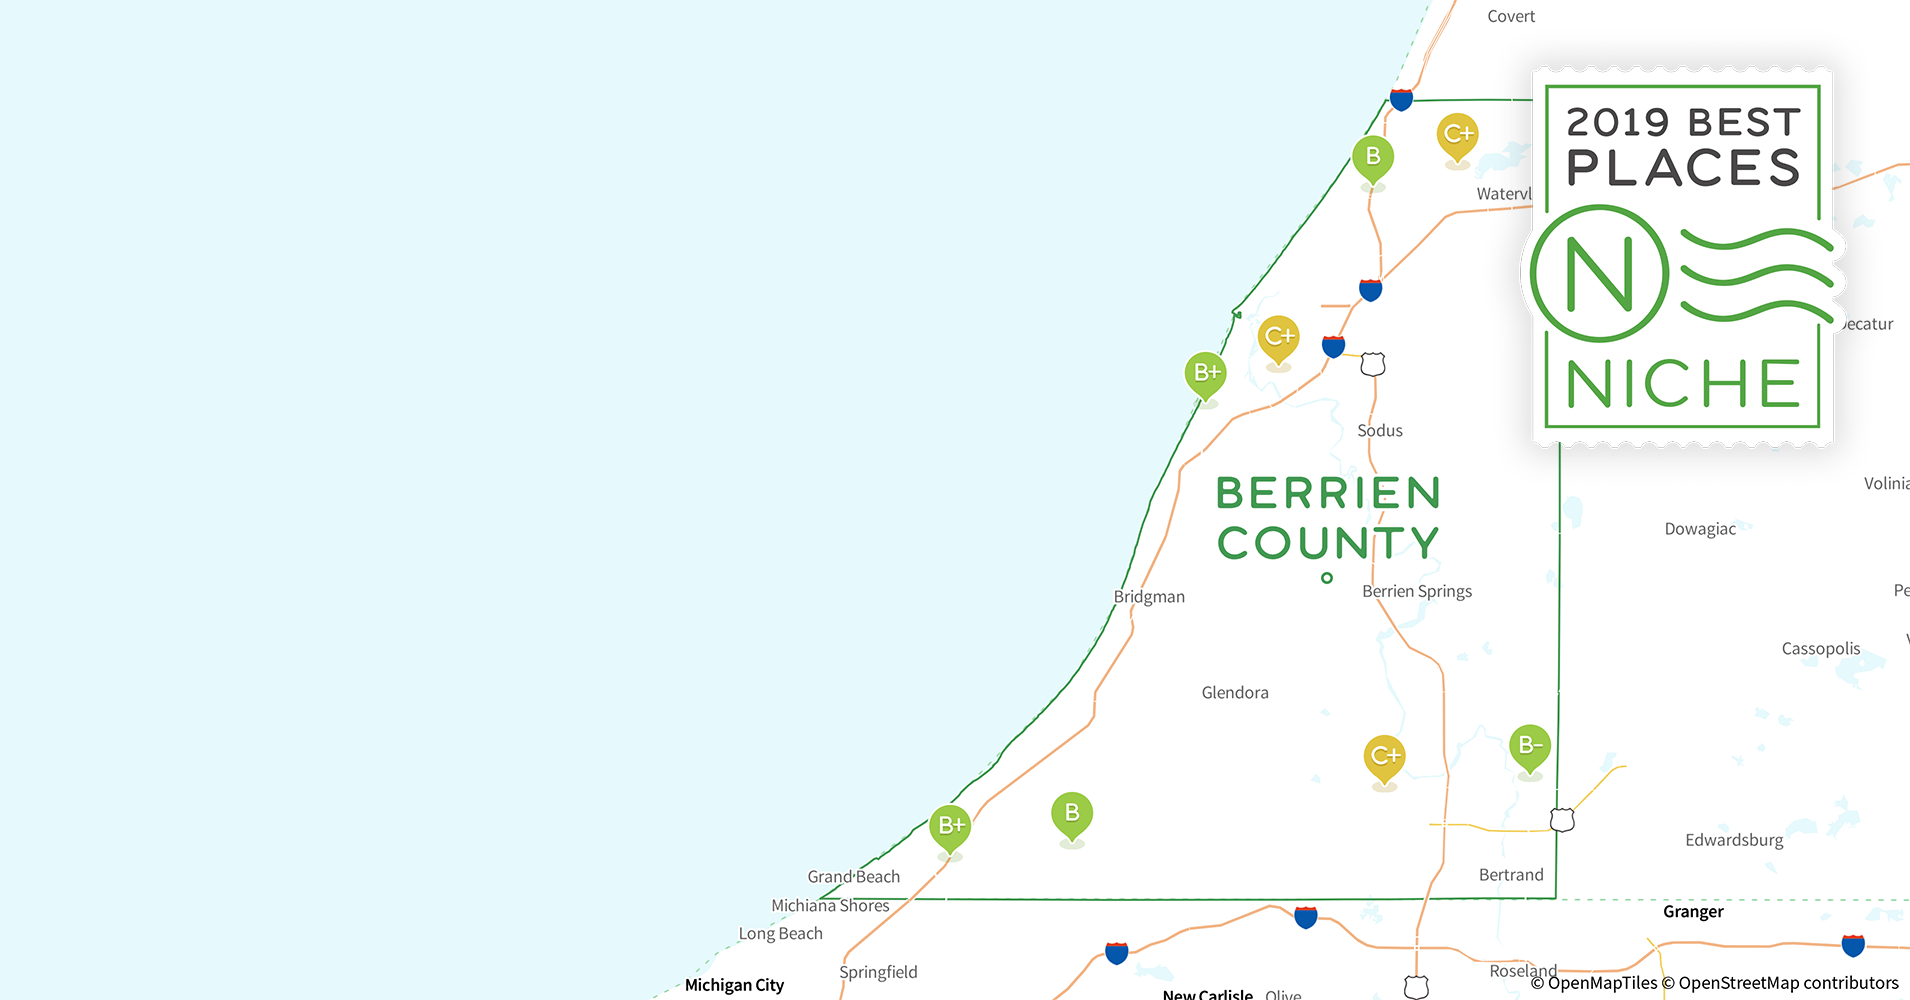 2019 Safe Places to Live in Berrien County, MI - Niche